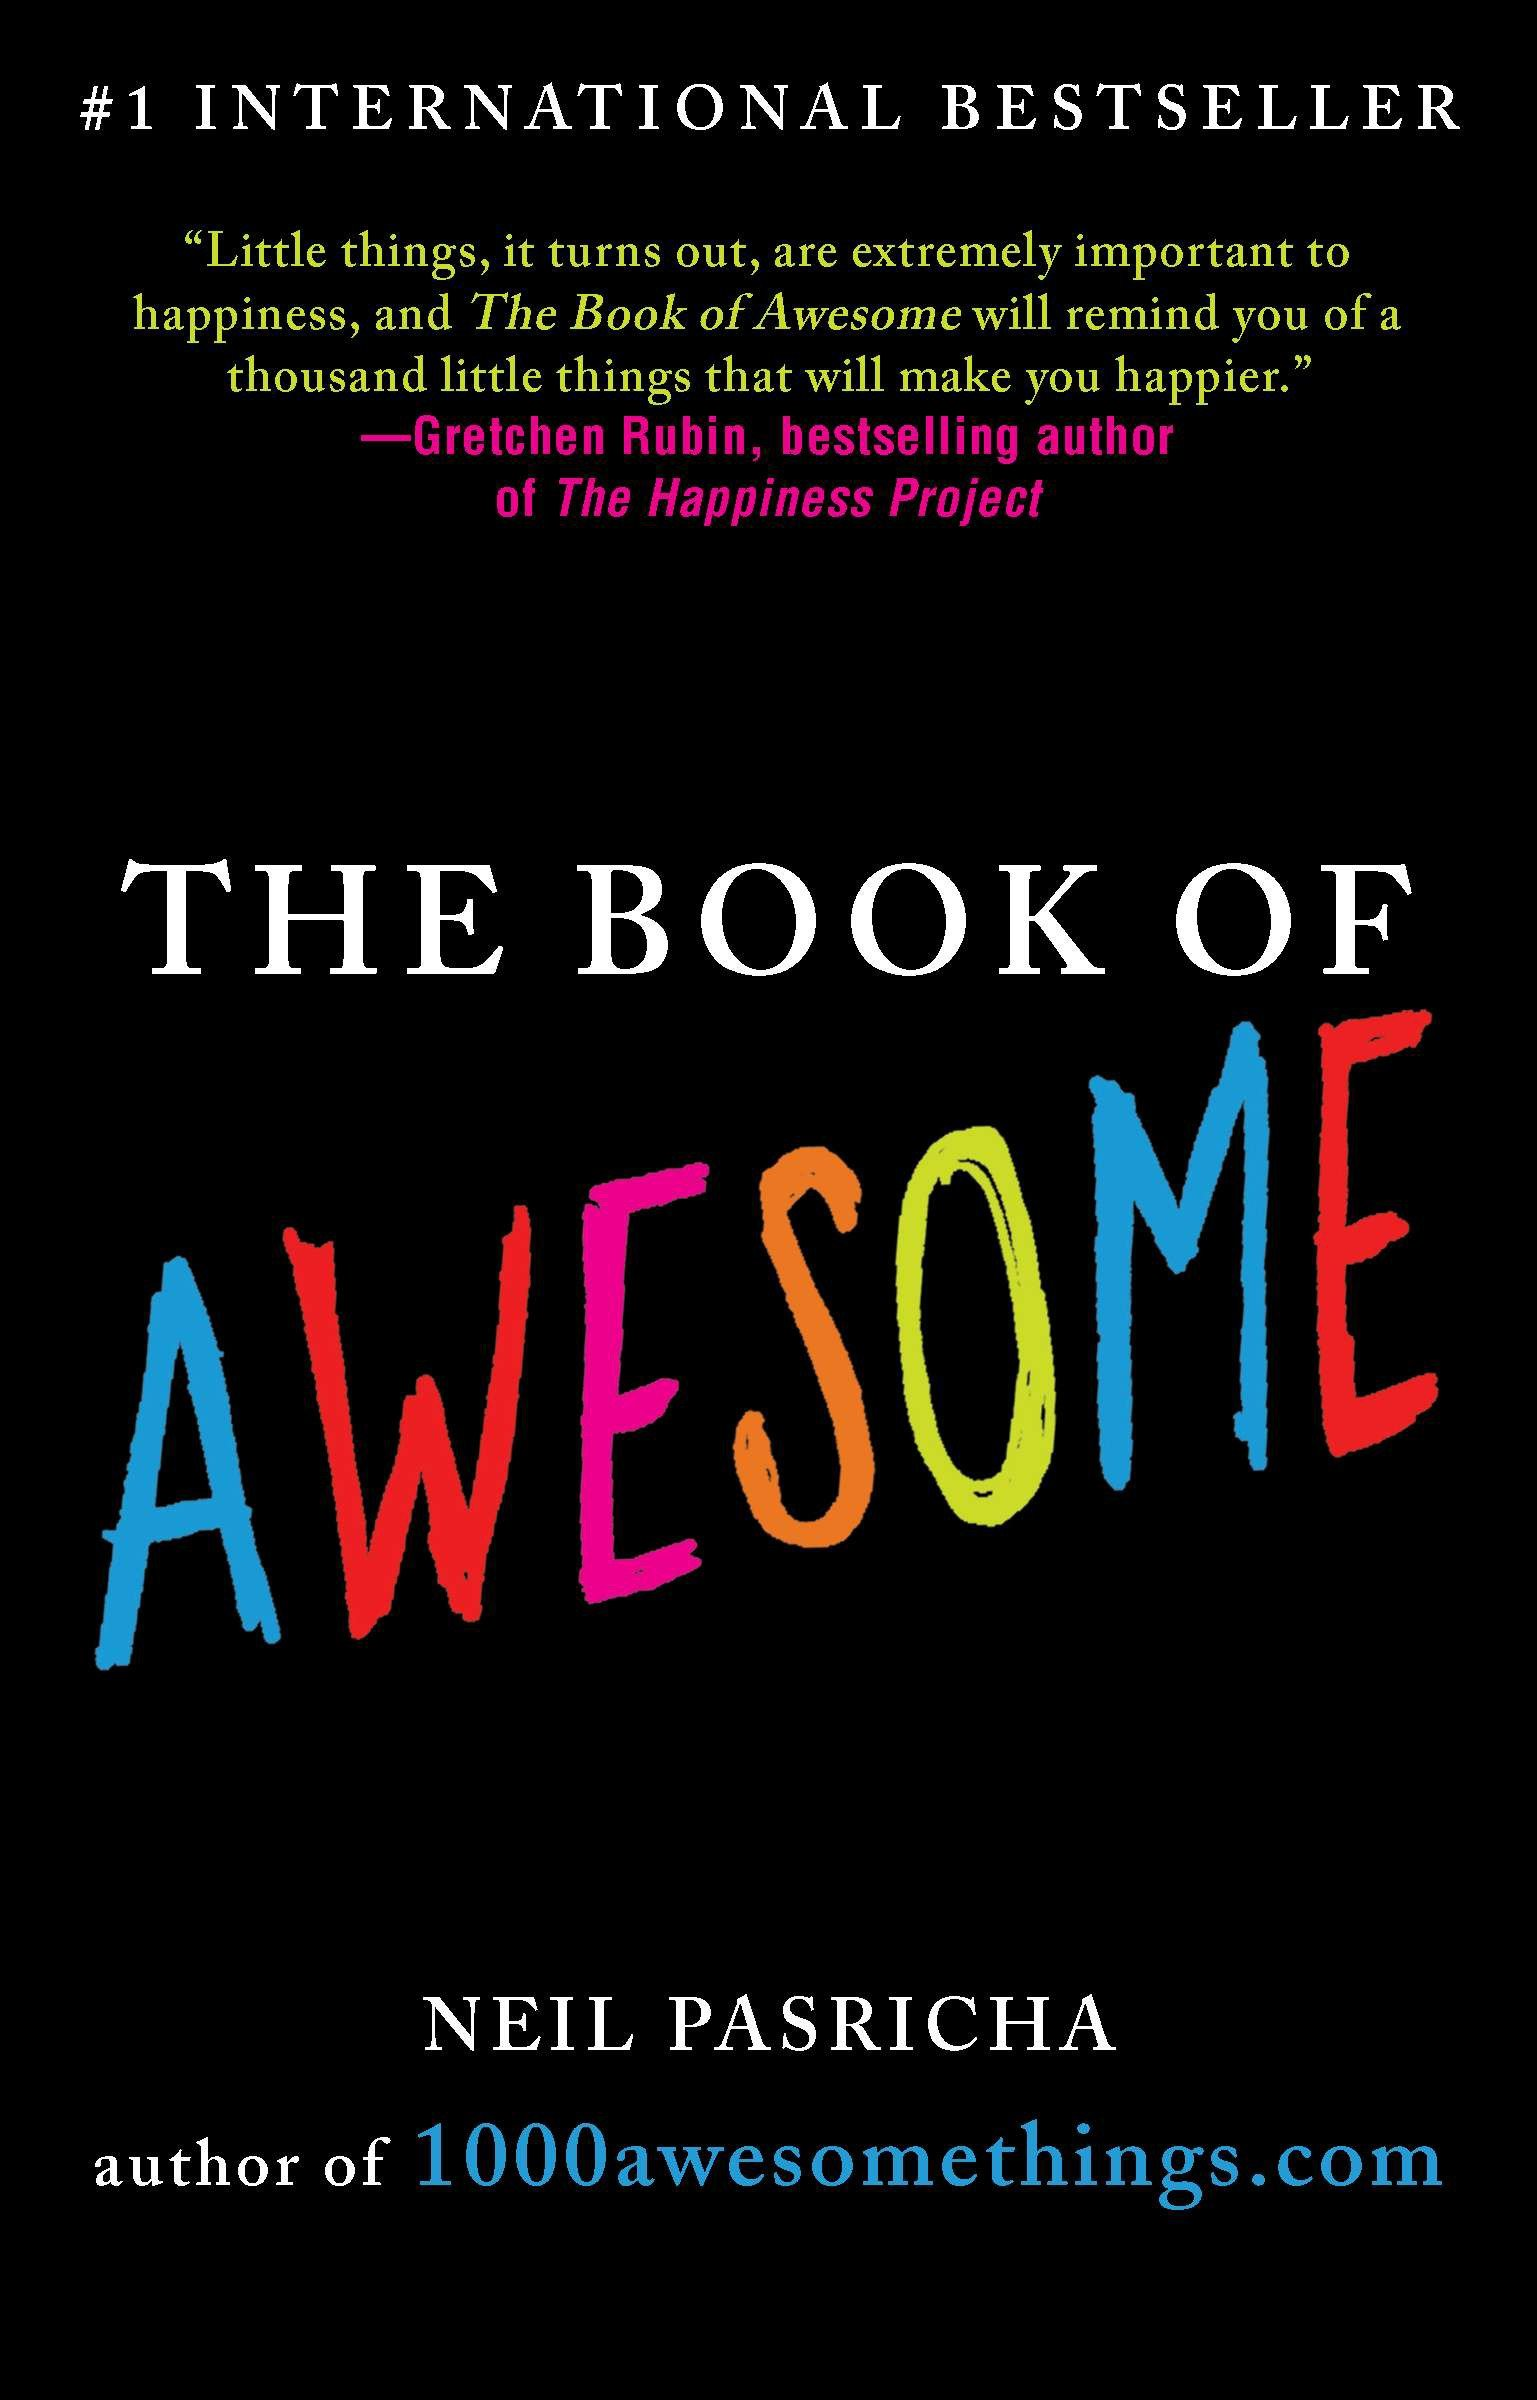 The book of awesome cover image